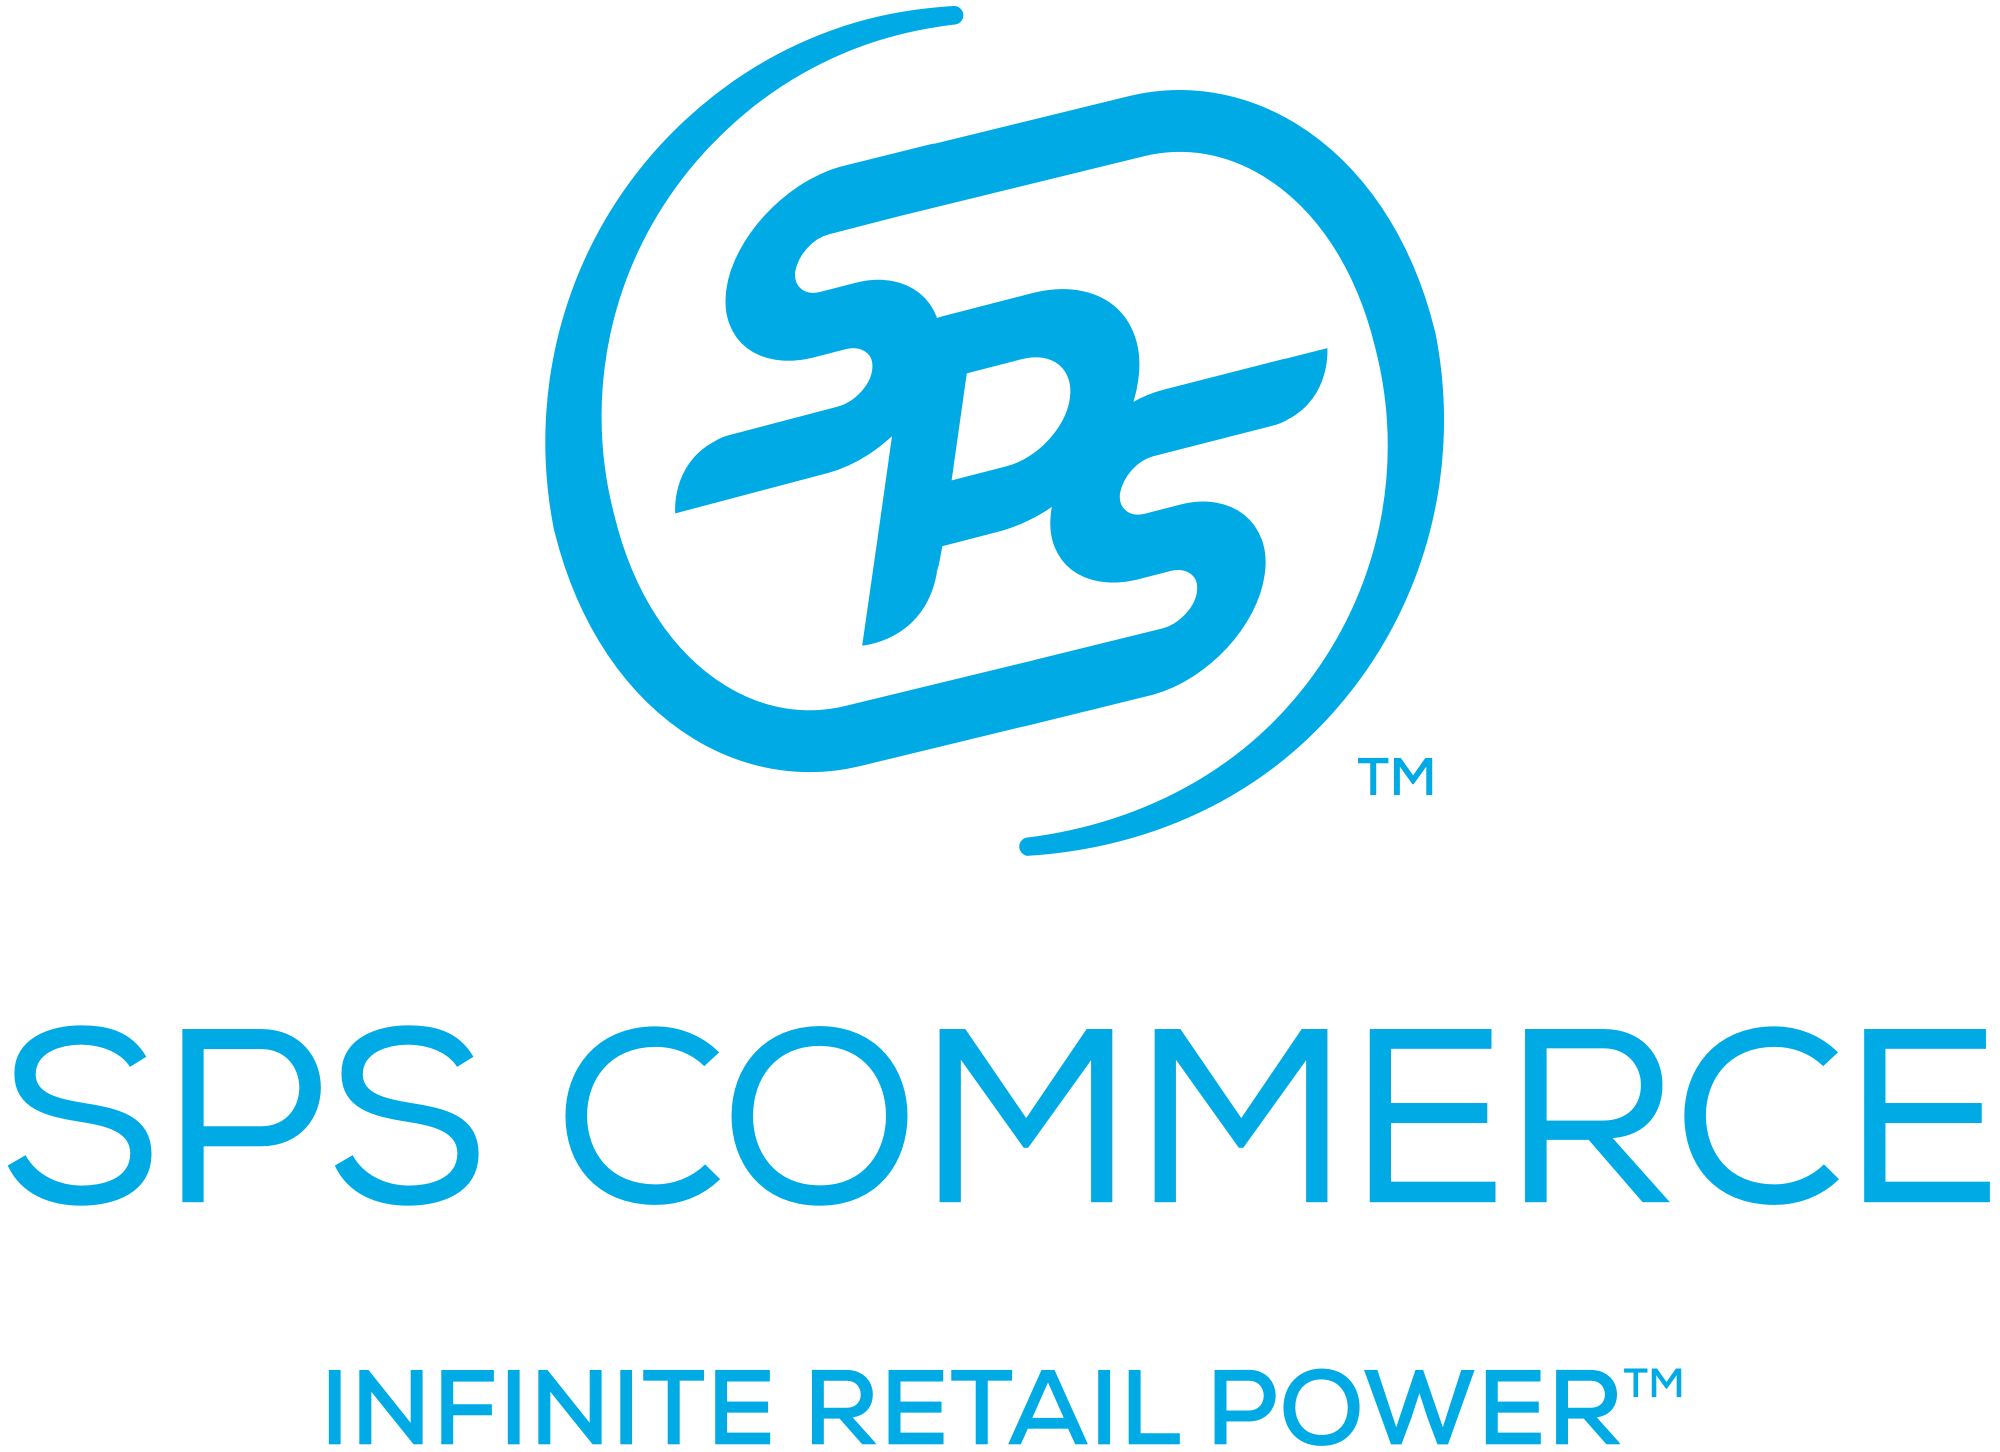 SPS Commerce – Full Service, Fully Embedded EDI Solution for Acumatica - SPS Commerce